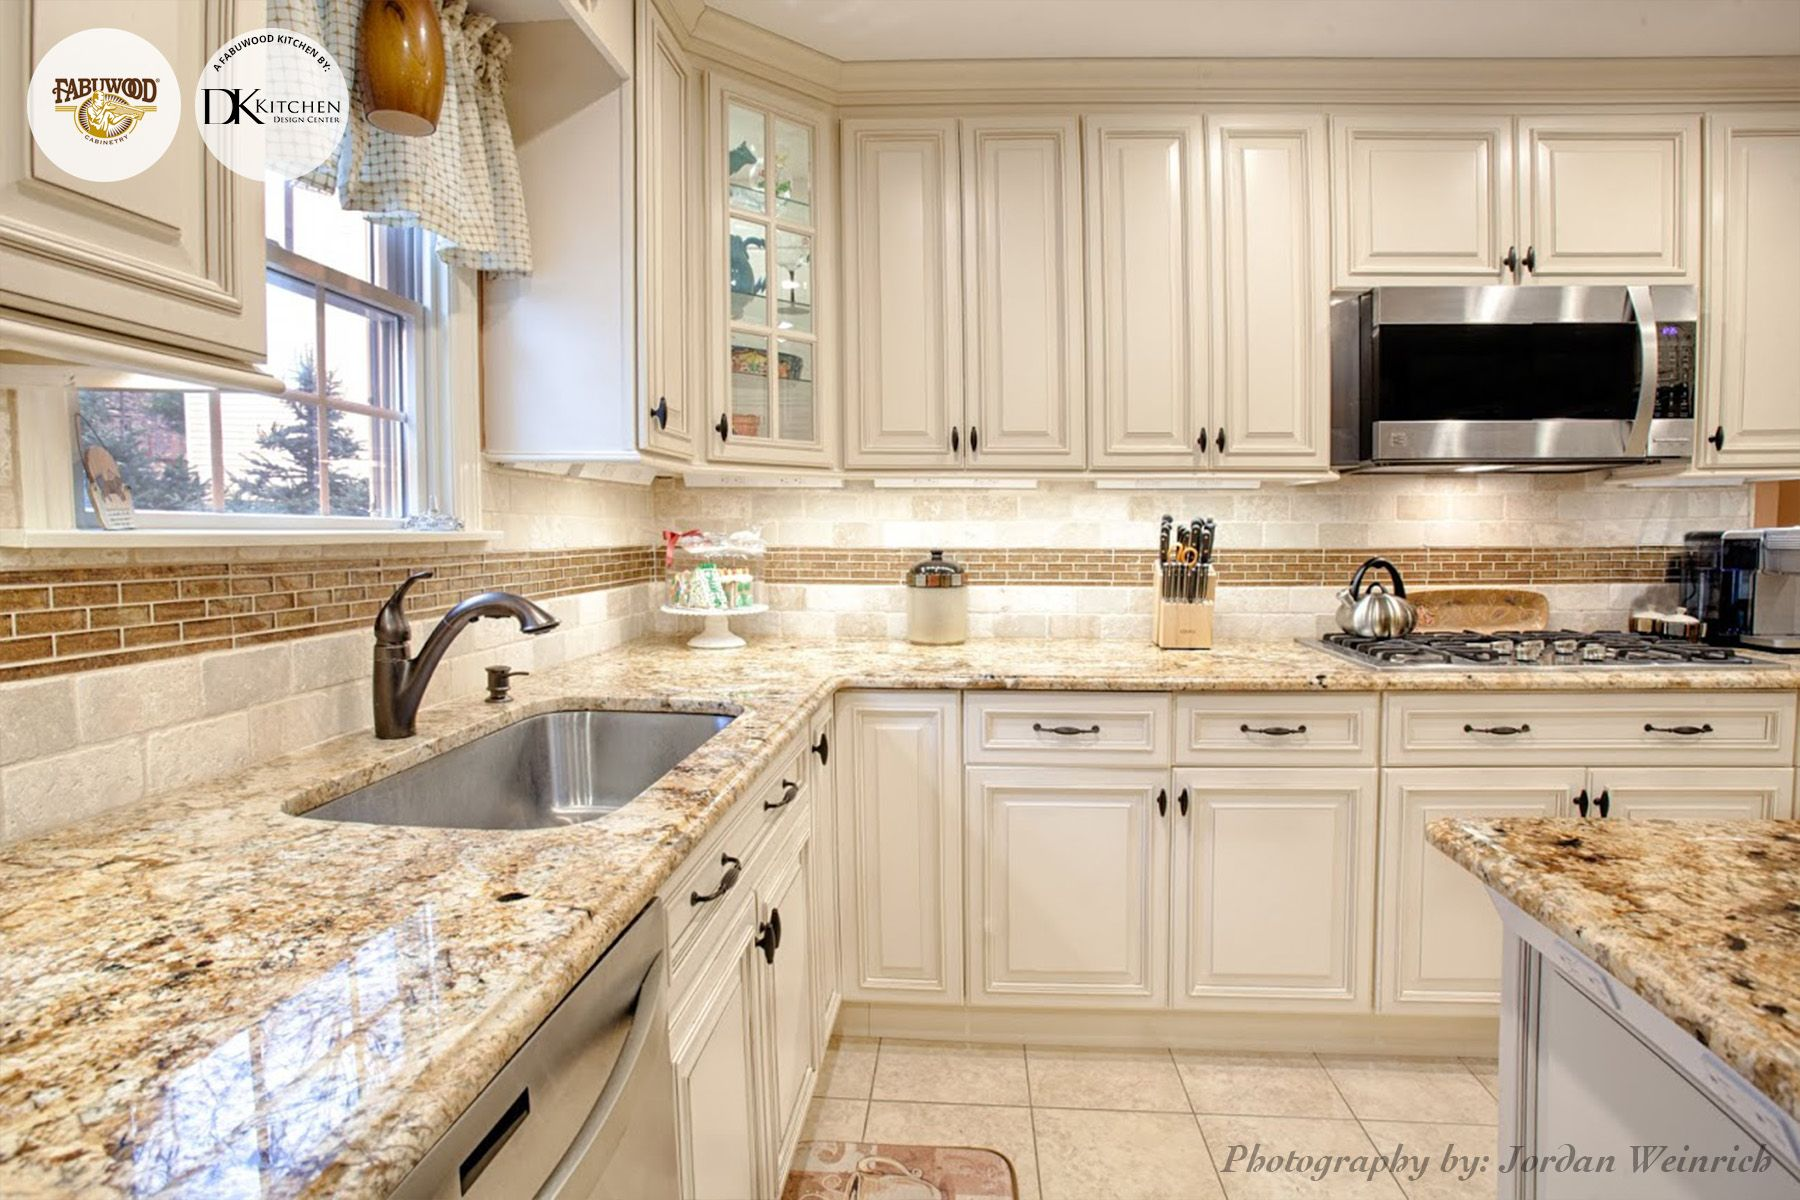 Kitchen Design Center Another Stunning View Of The Wellington Kitchen In Ivory Glaze